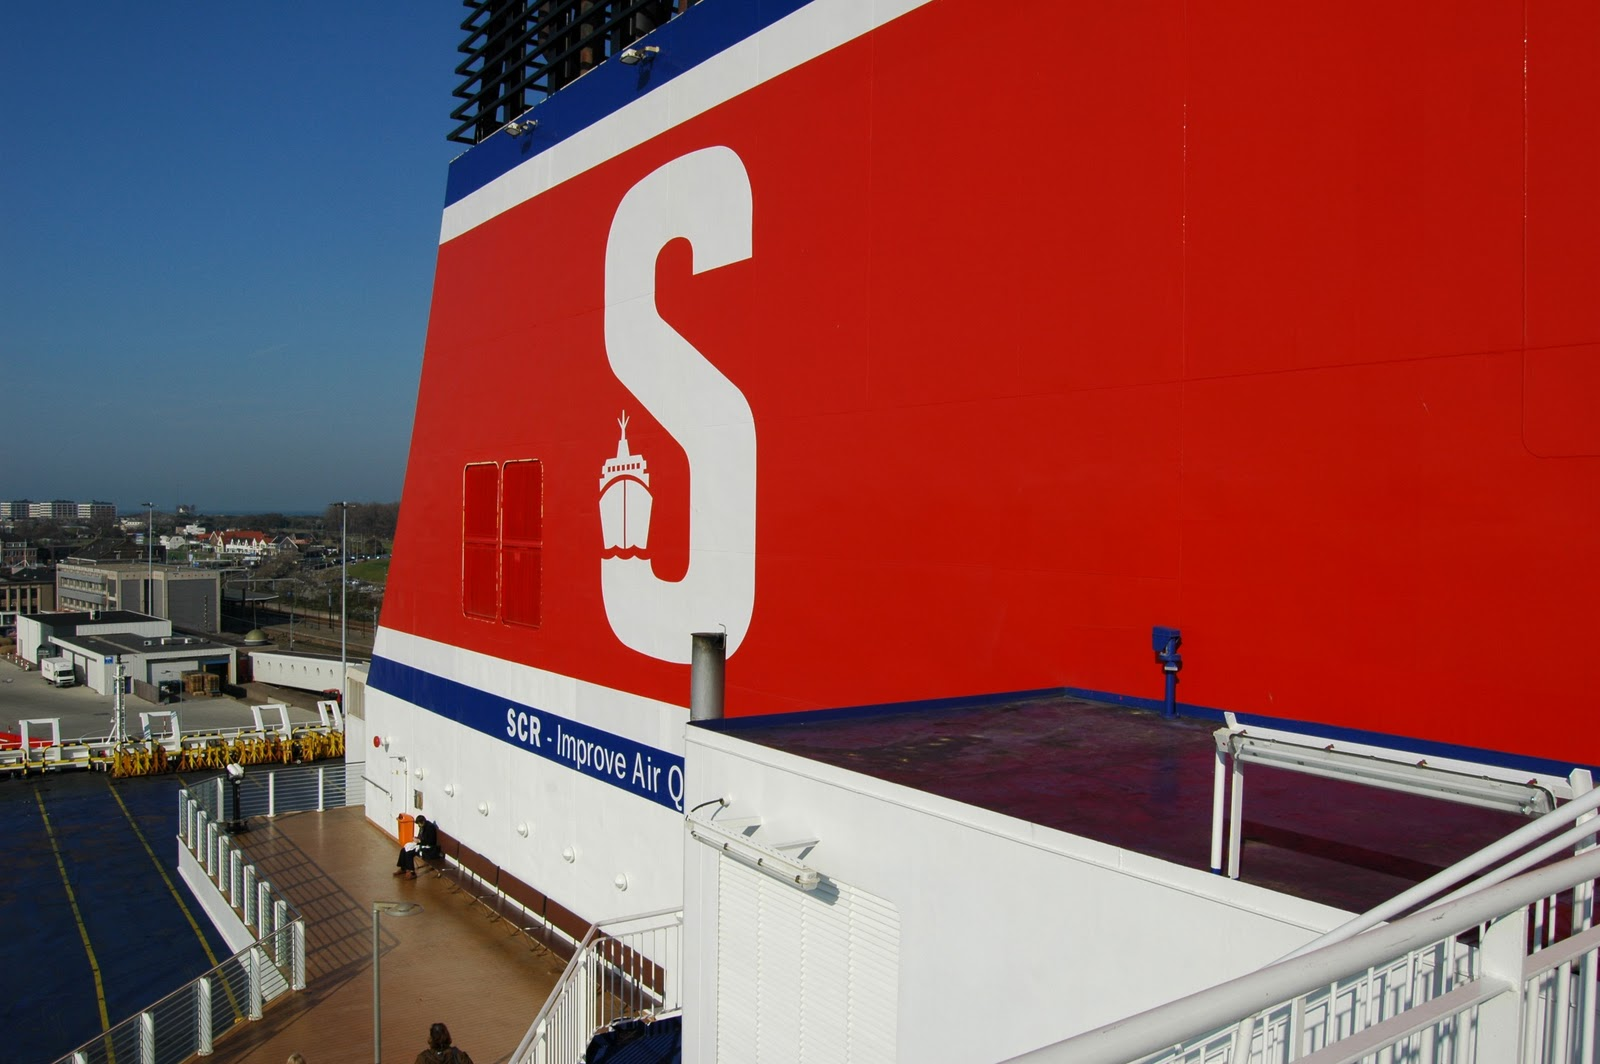 vmf-alifesailingcruiseferries blogspot co uk: My first trip on the